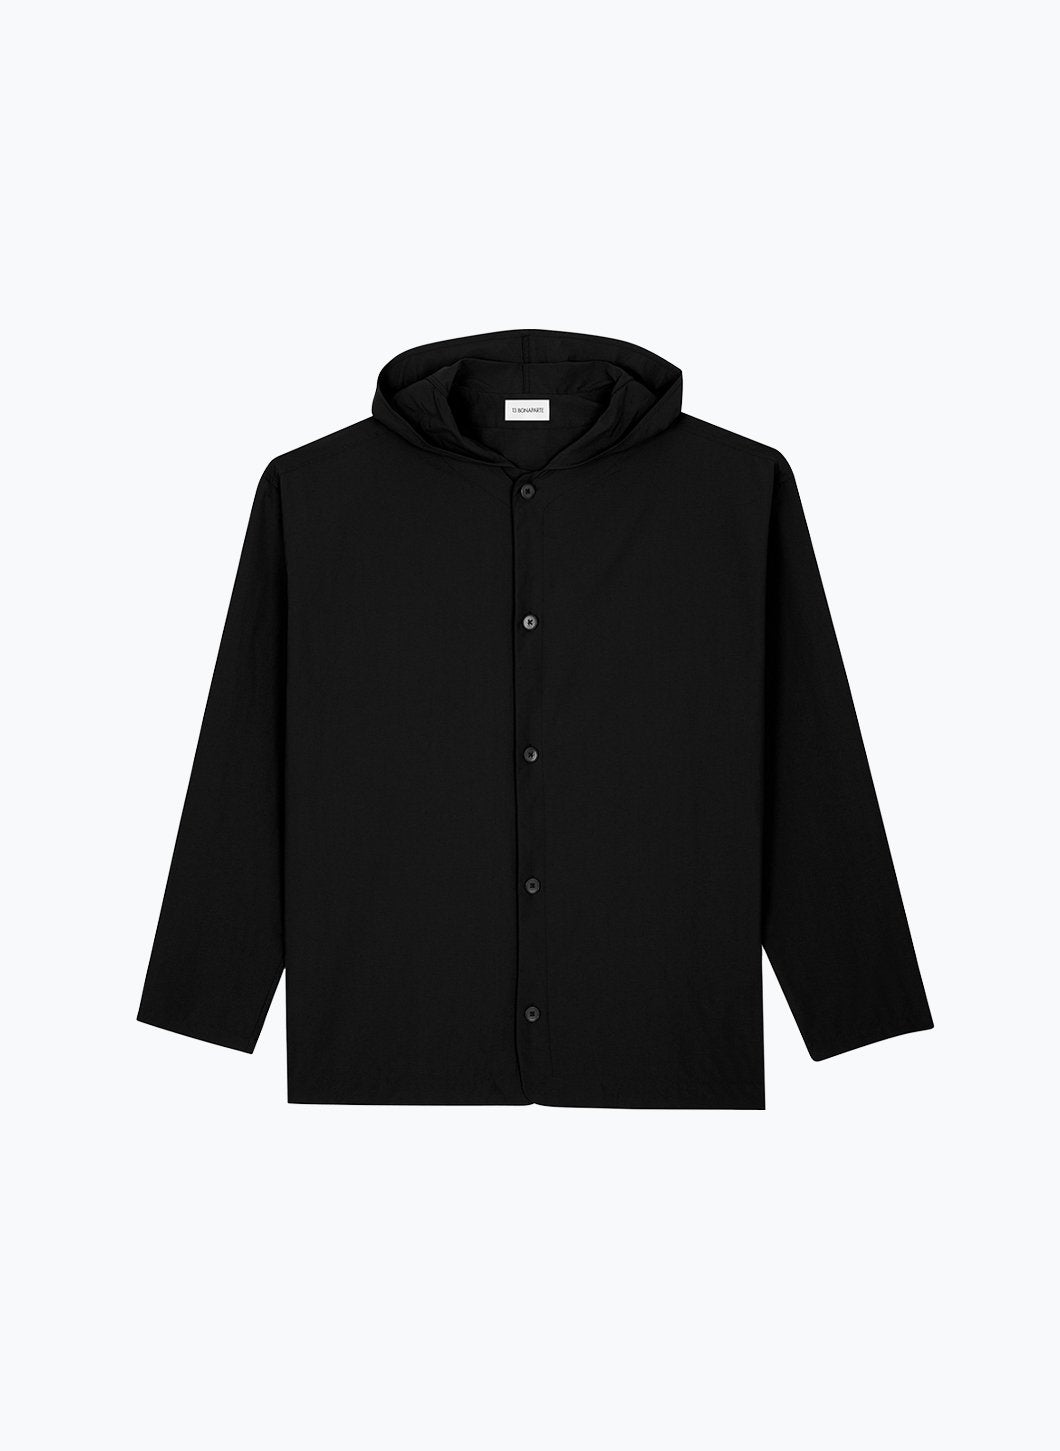 Hooded Overshirt with Rounded Neckline in Black Technical Fabric